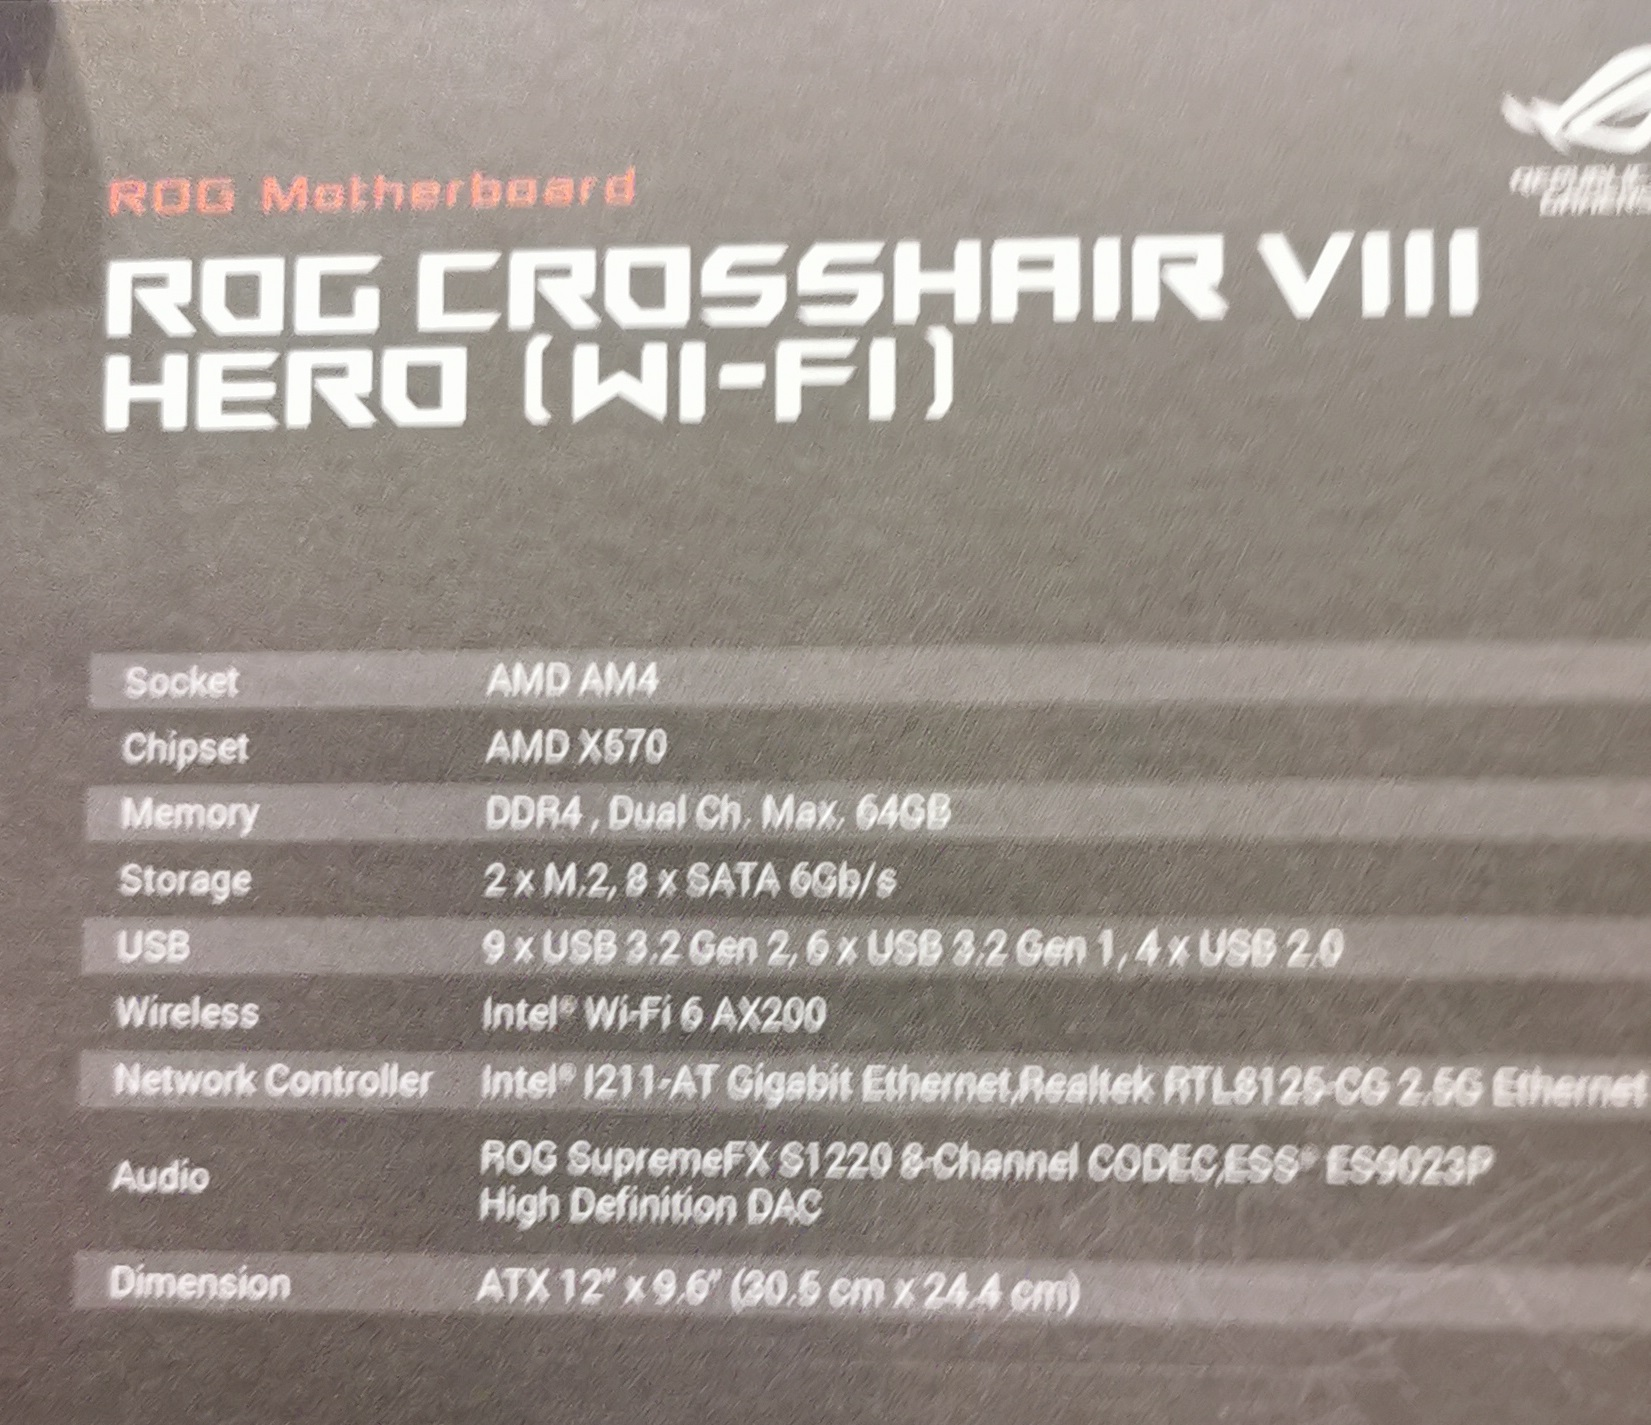 The ASUS ROG Crosshair VIII Hero: With or Without Wi-Fi 6, Both With